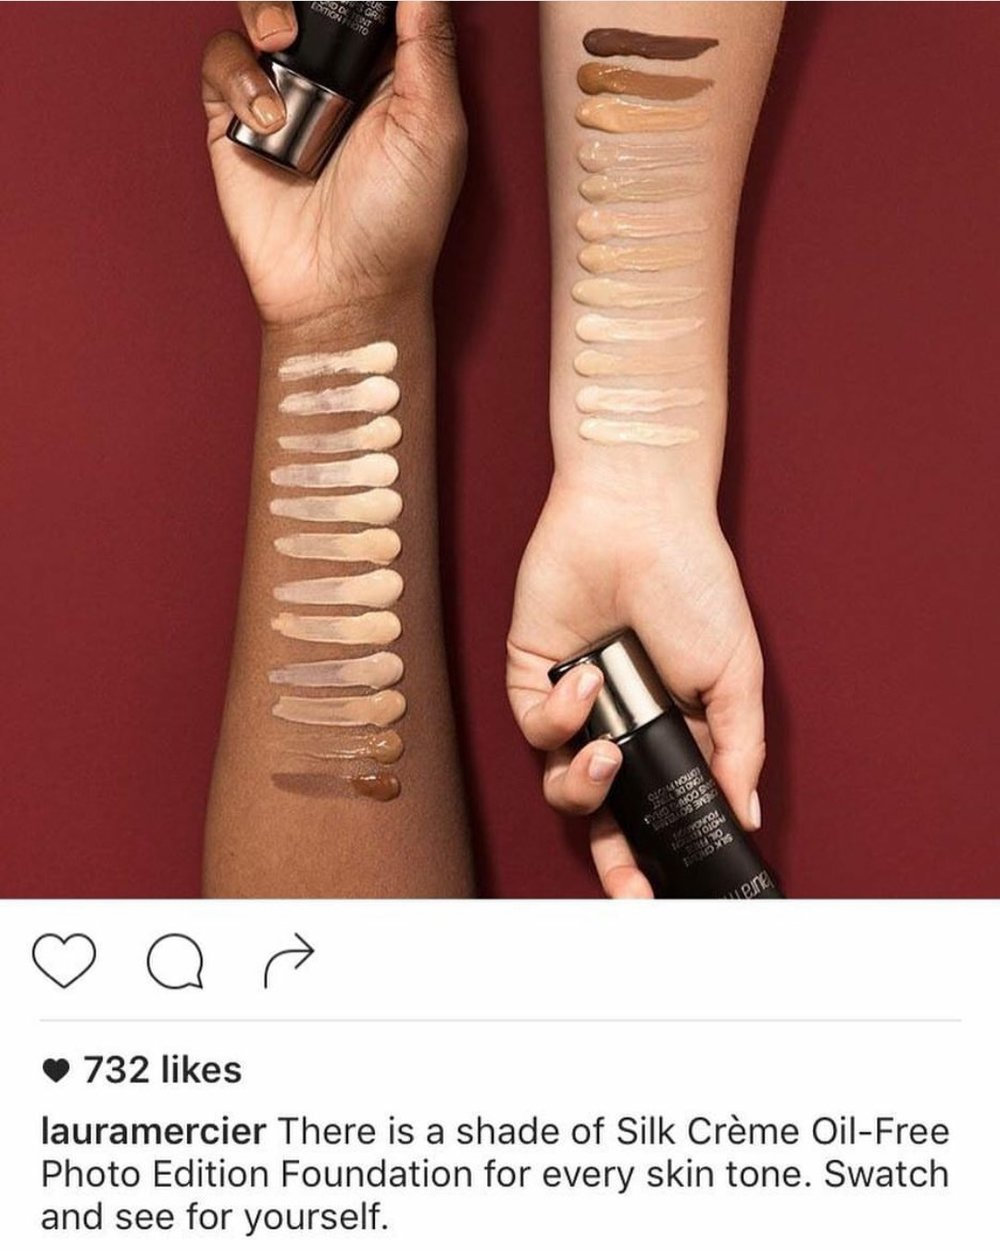 The Instagram post for Laura Mercier's page.